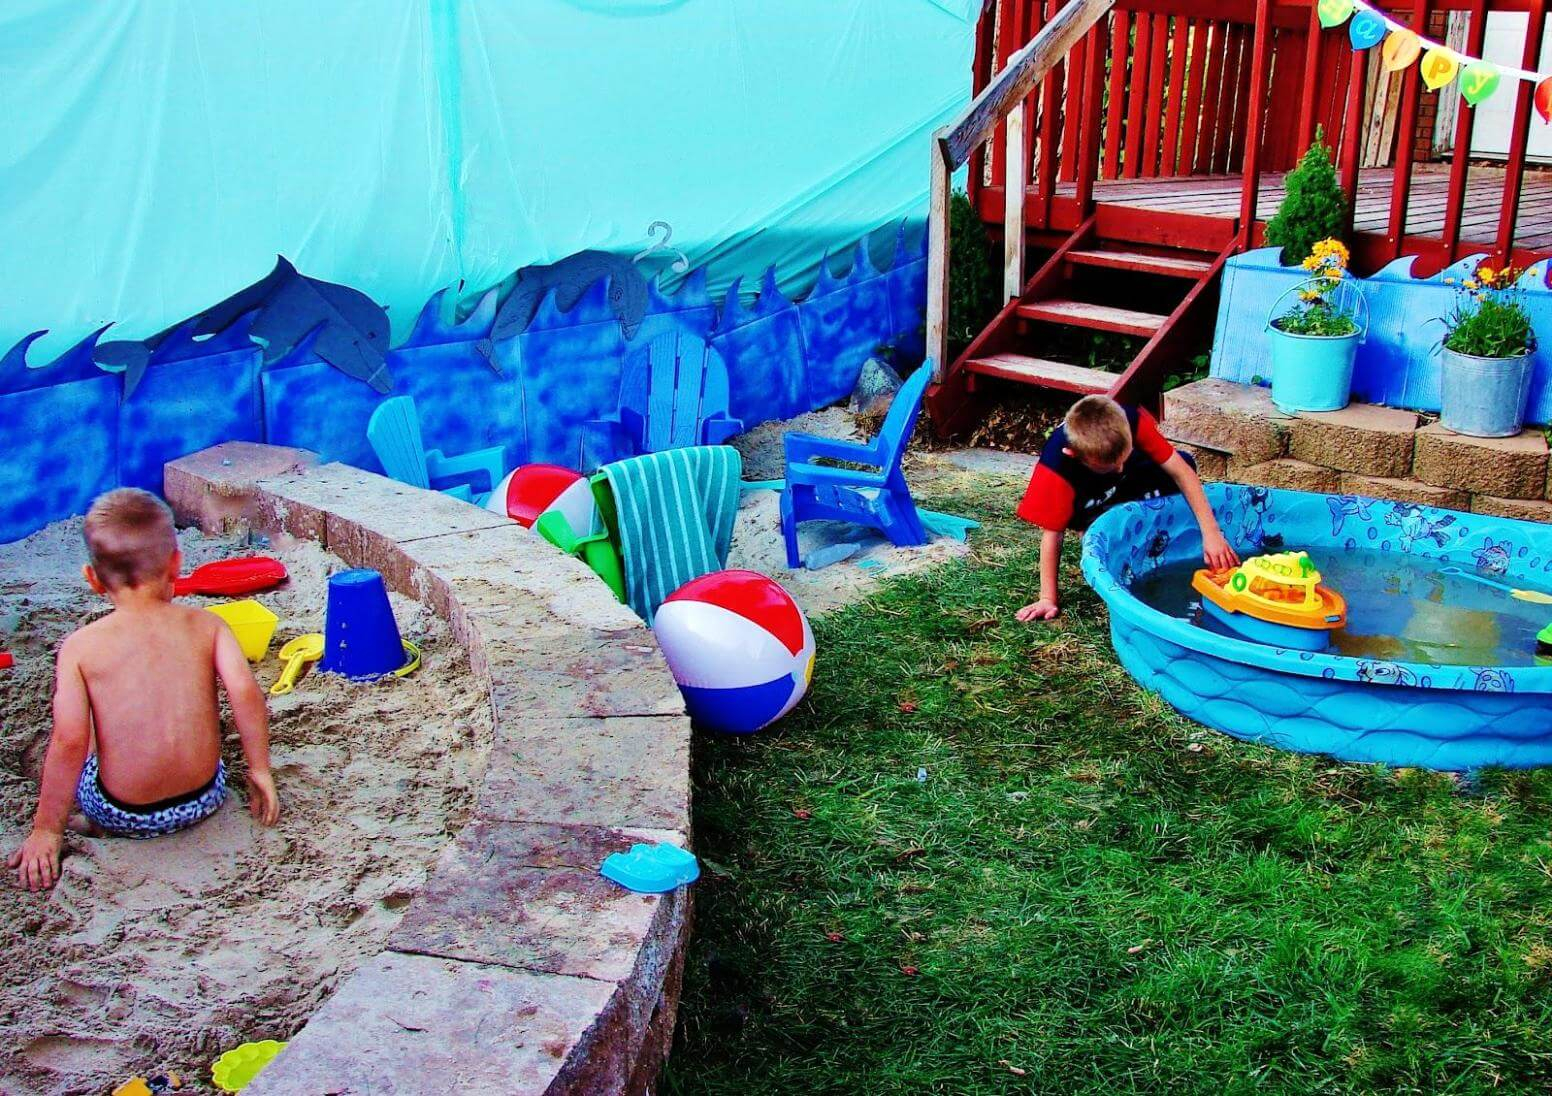 Backyard Beach Party Ideas For Kids America Underwater Decor for 14 Some of the Coolest Ways How to Makeover Beach Backyard Ideas